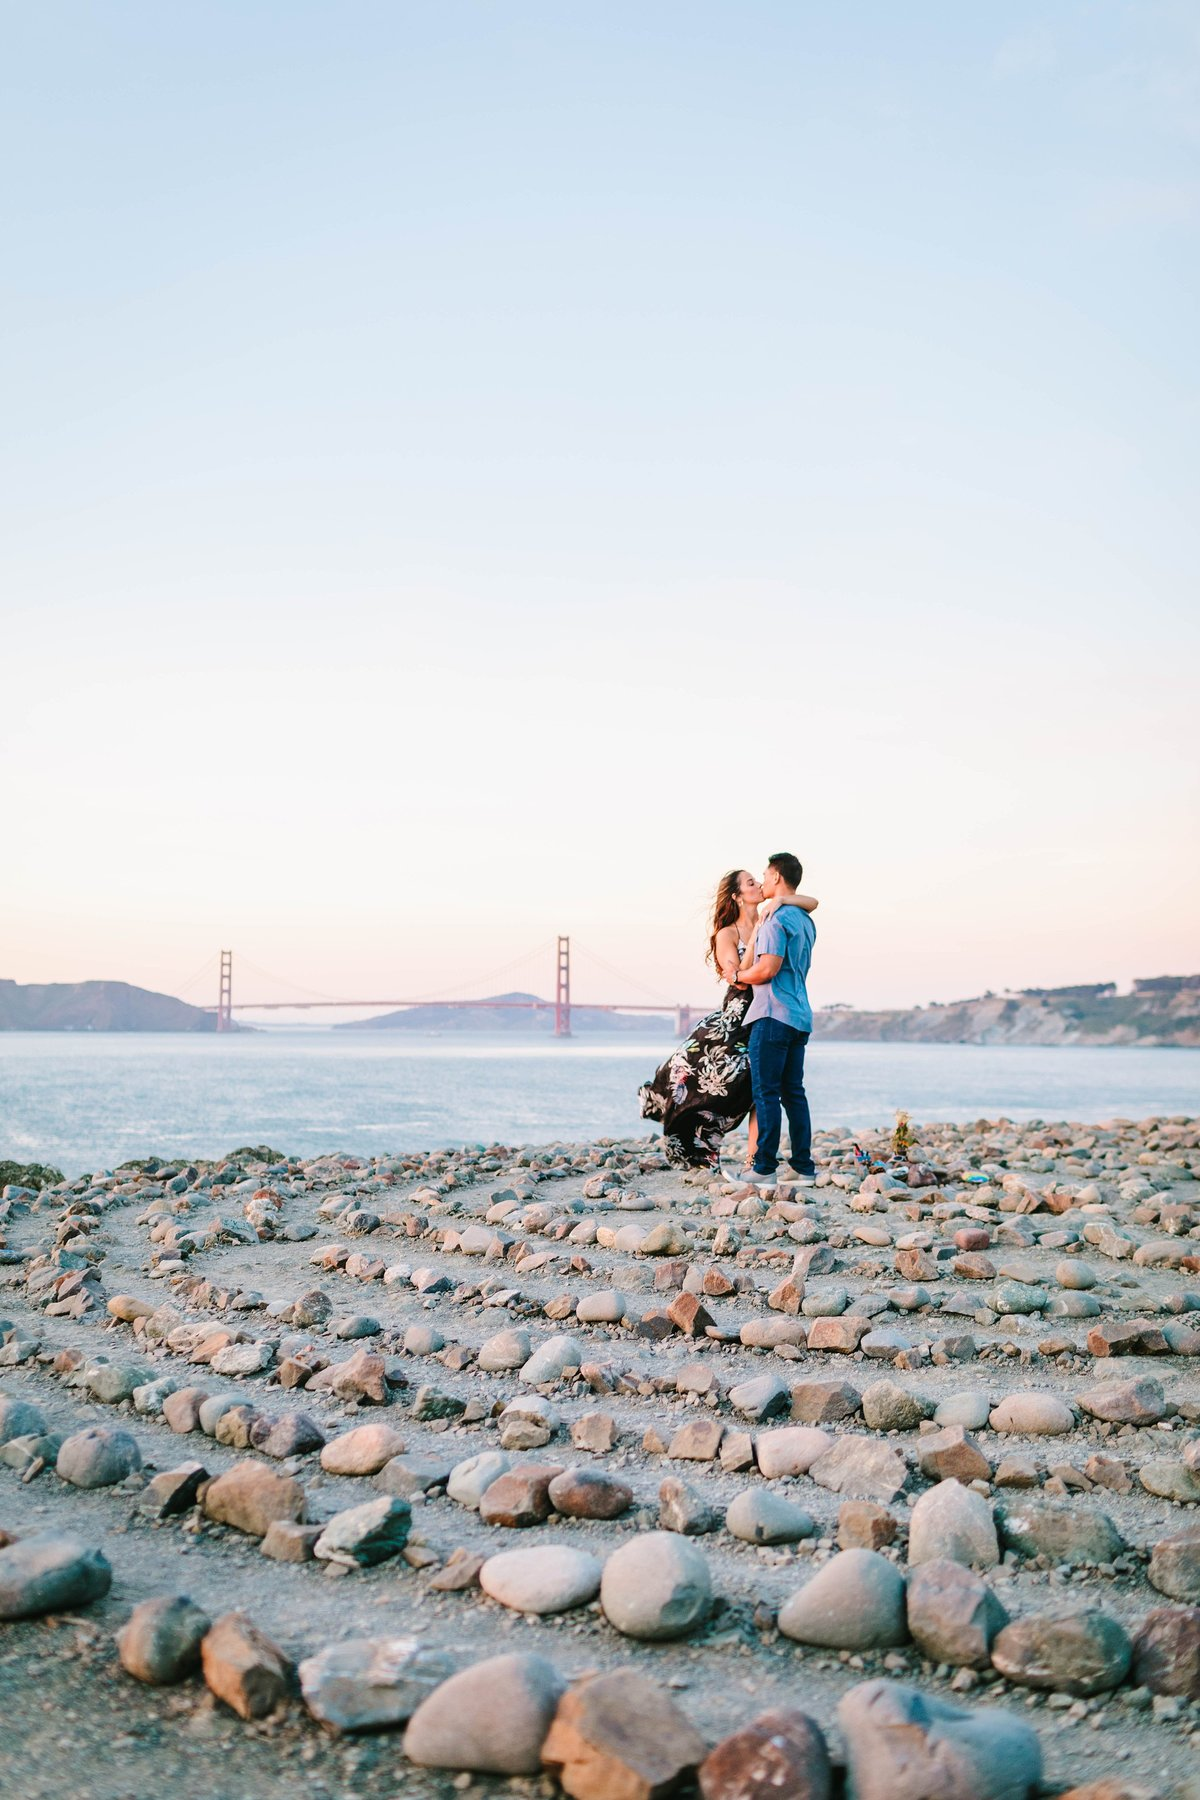 Best California Engagement Photographer_Jodee Debes Photography_057